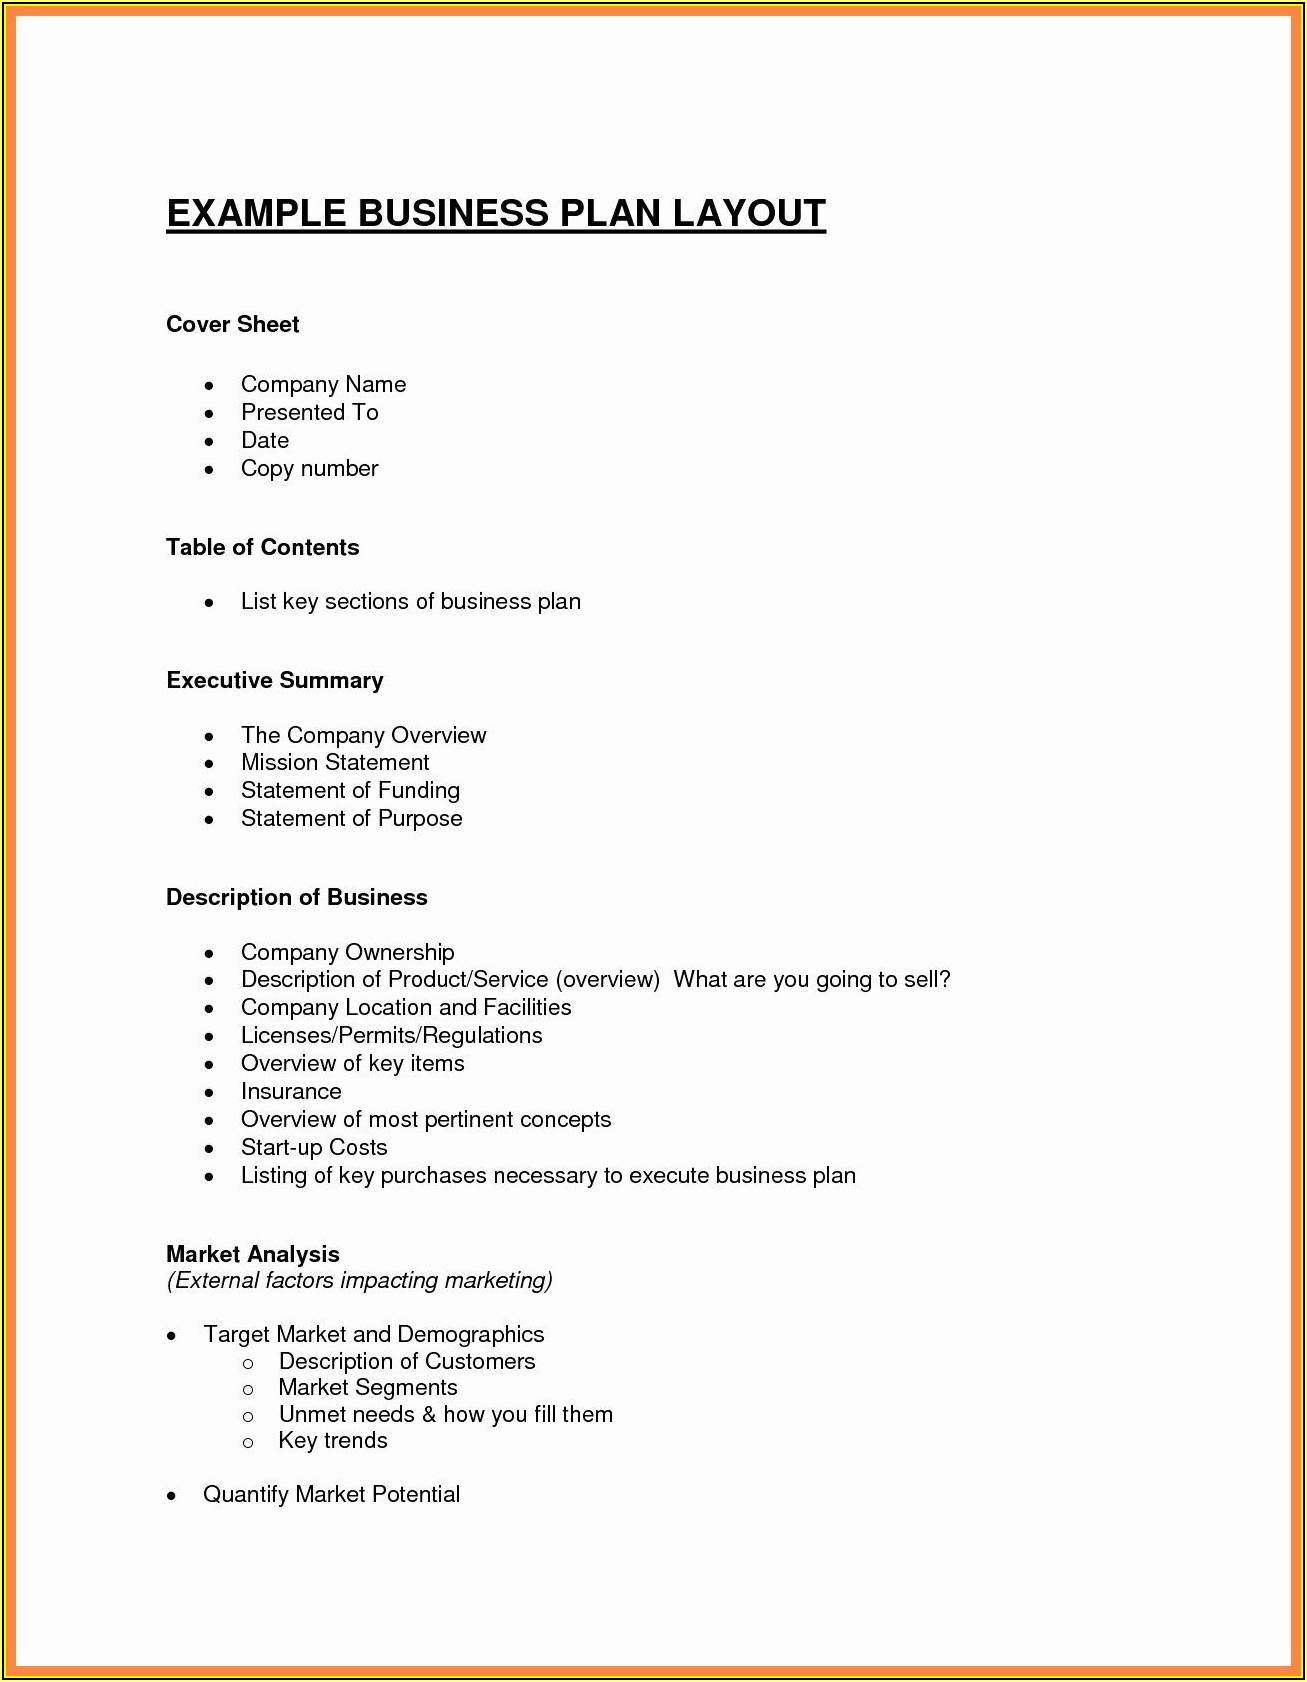 Hair Salon Business Plan Template Free